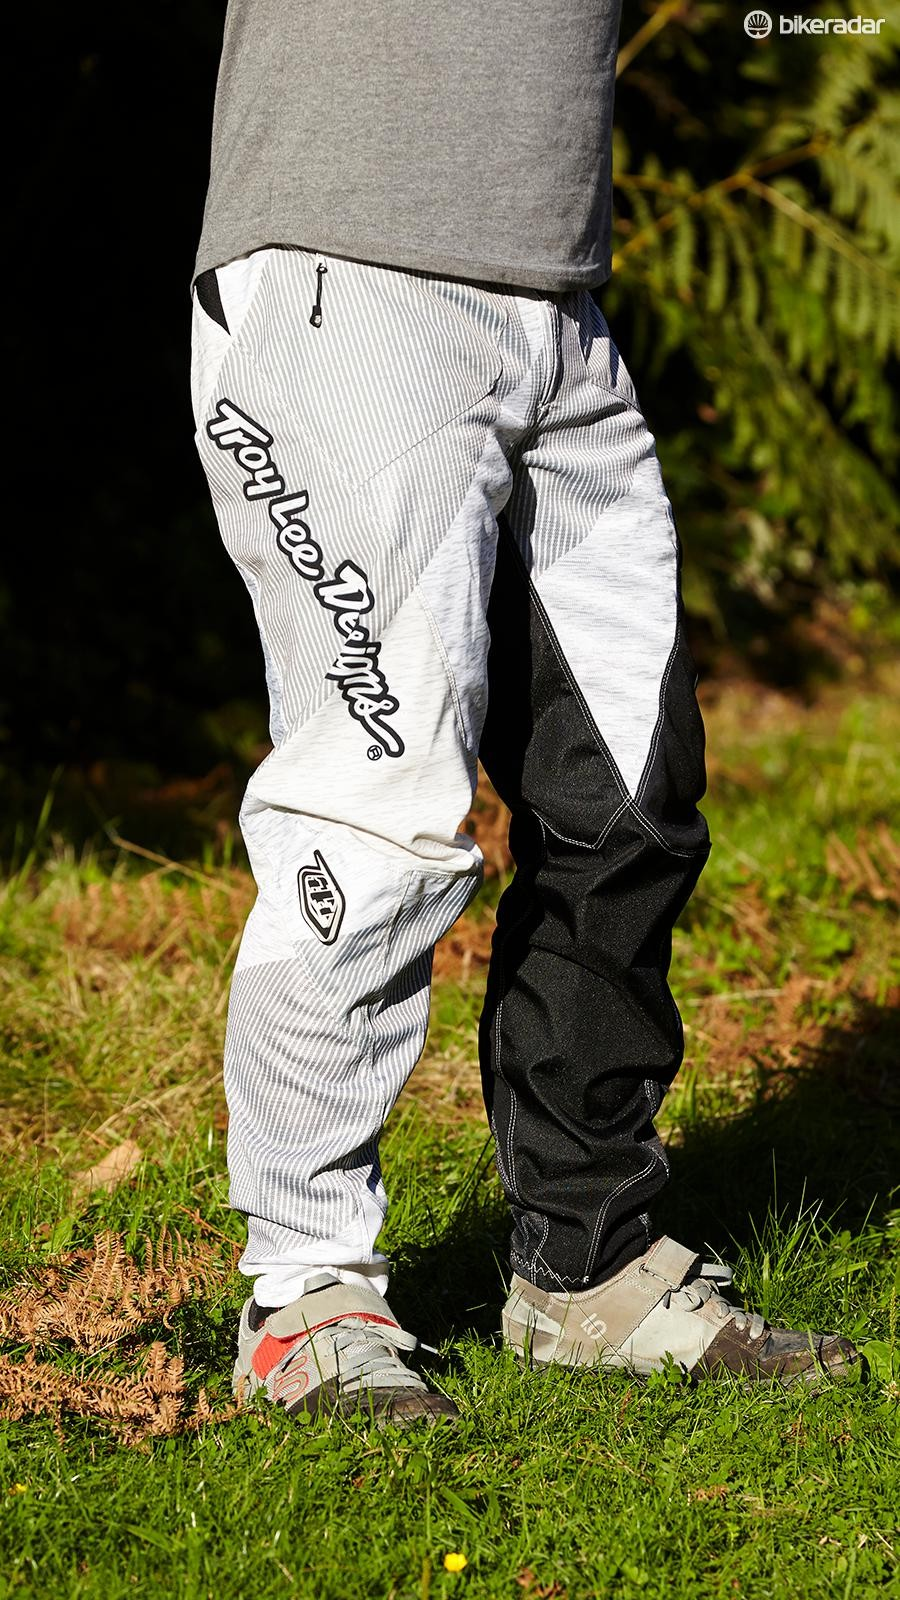 Troy Lee Designs Sprint downhill pants